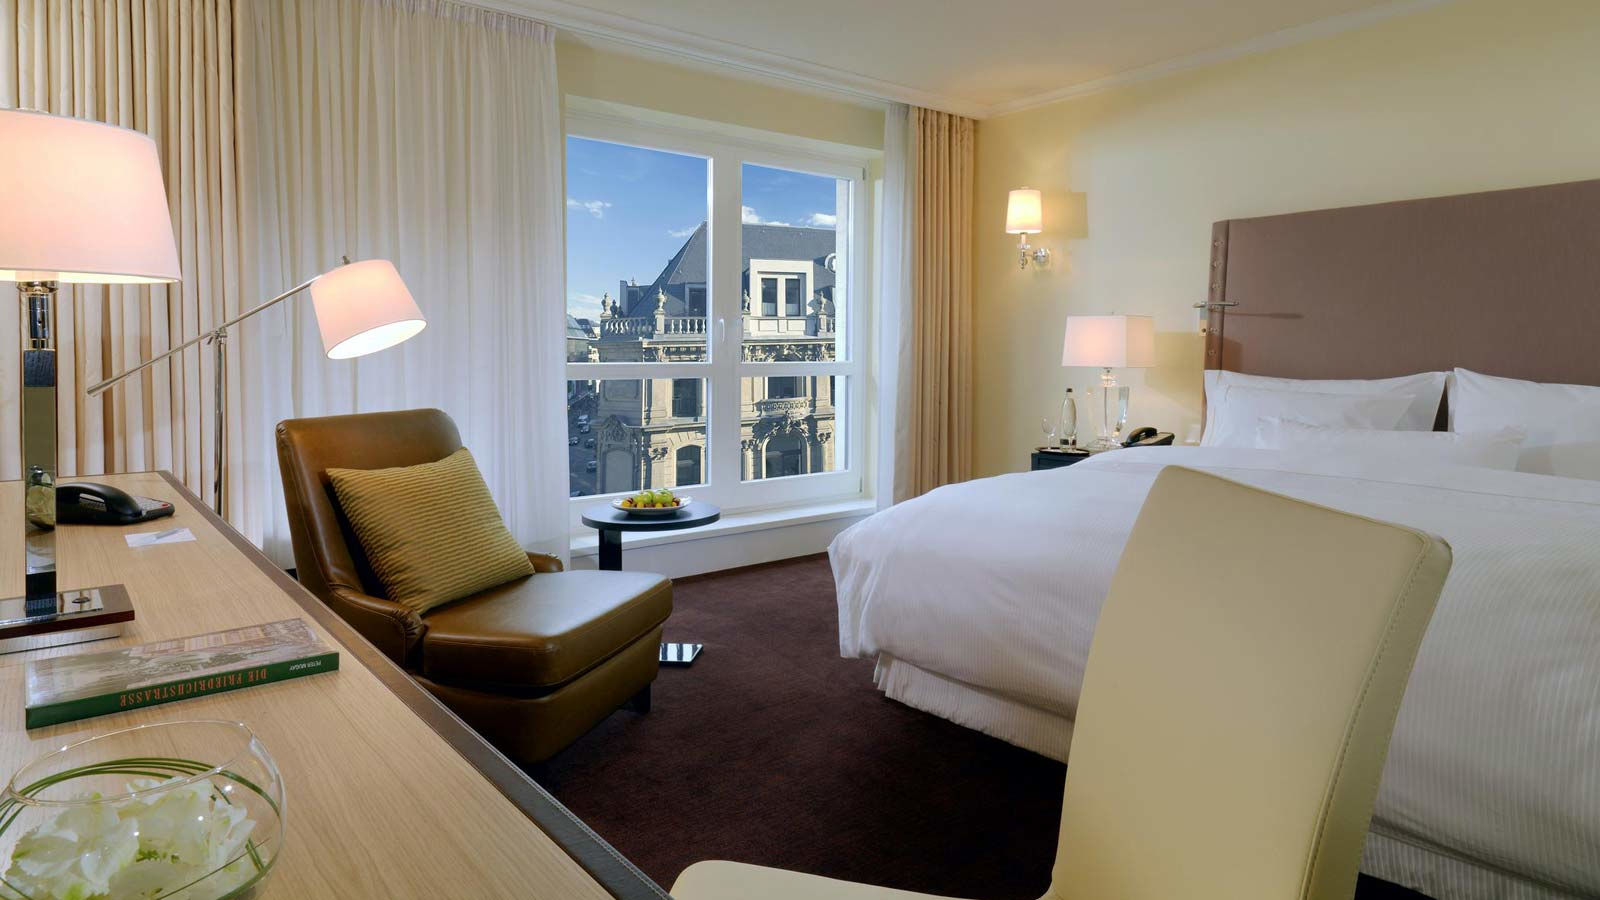 Linden Superior Zimmer im The Westin Grand Hotel Berlin